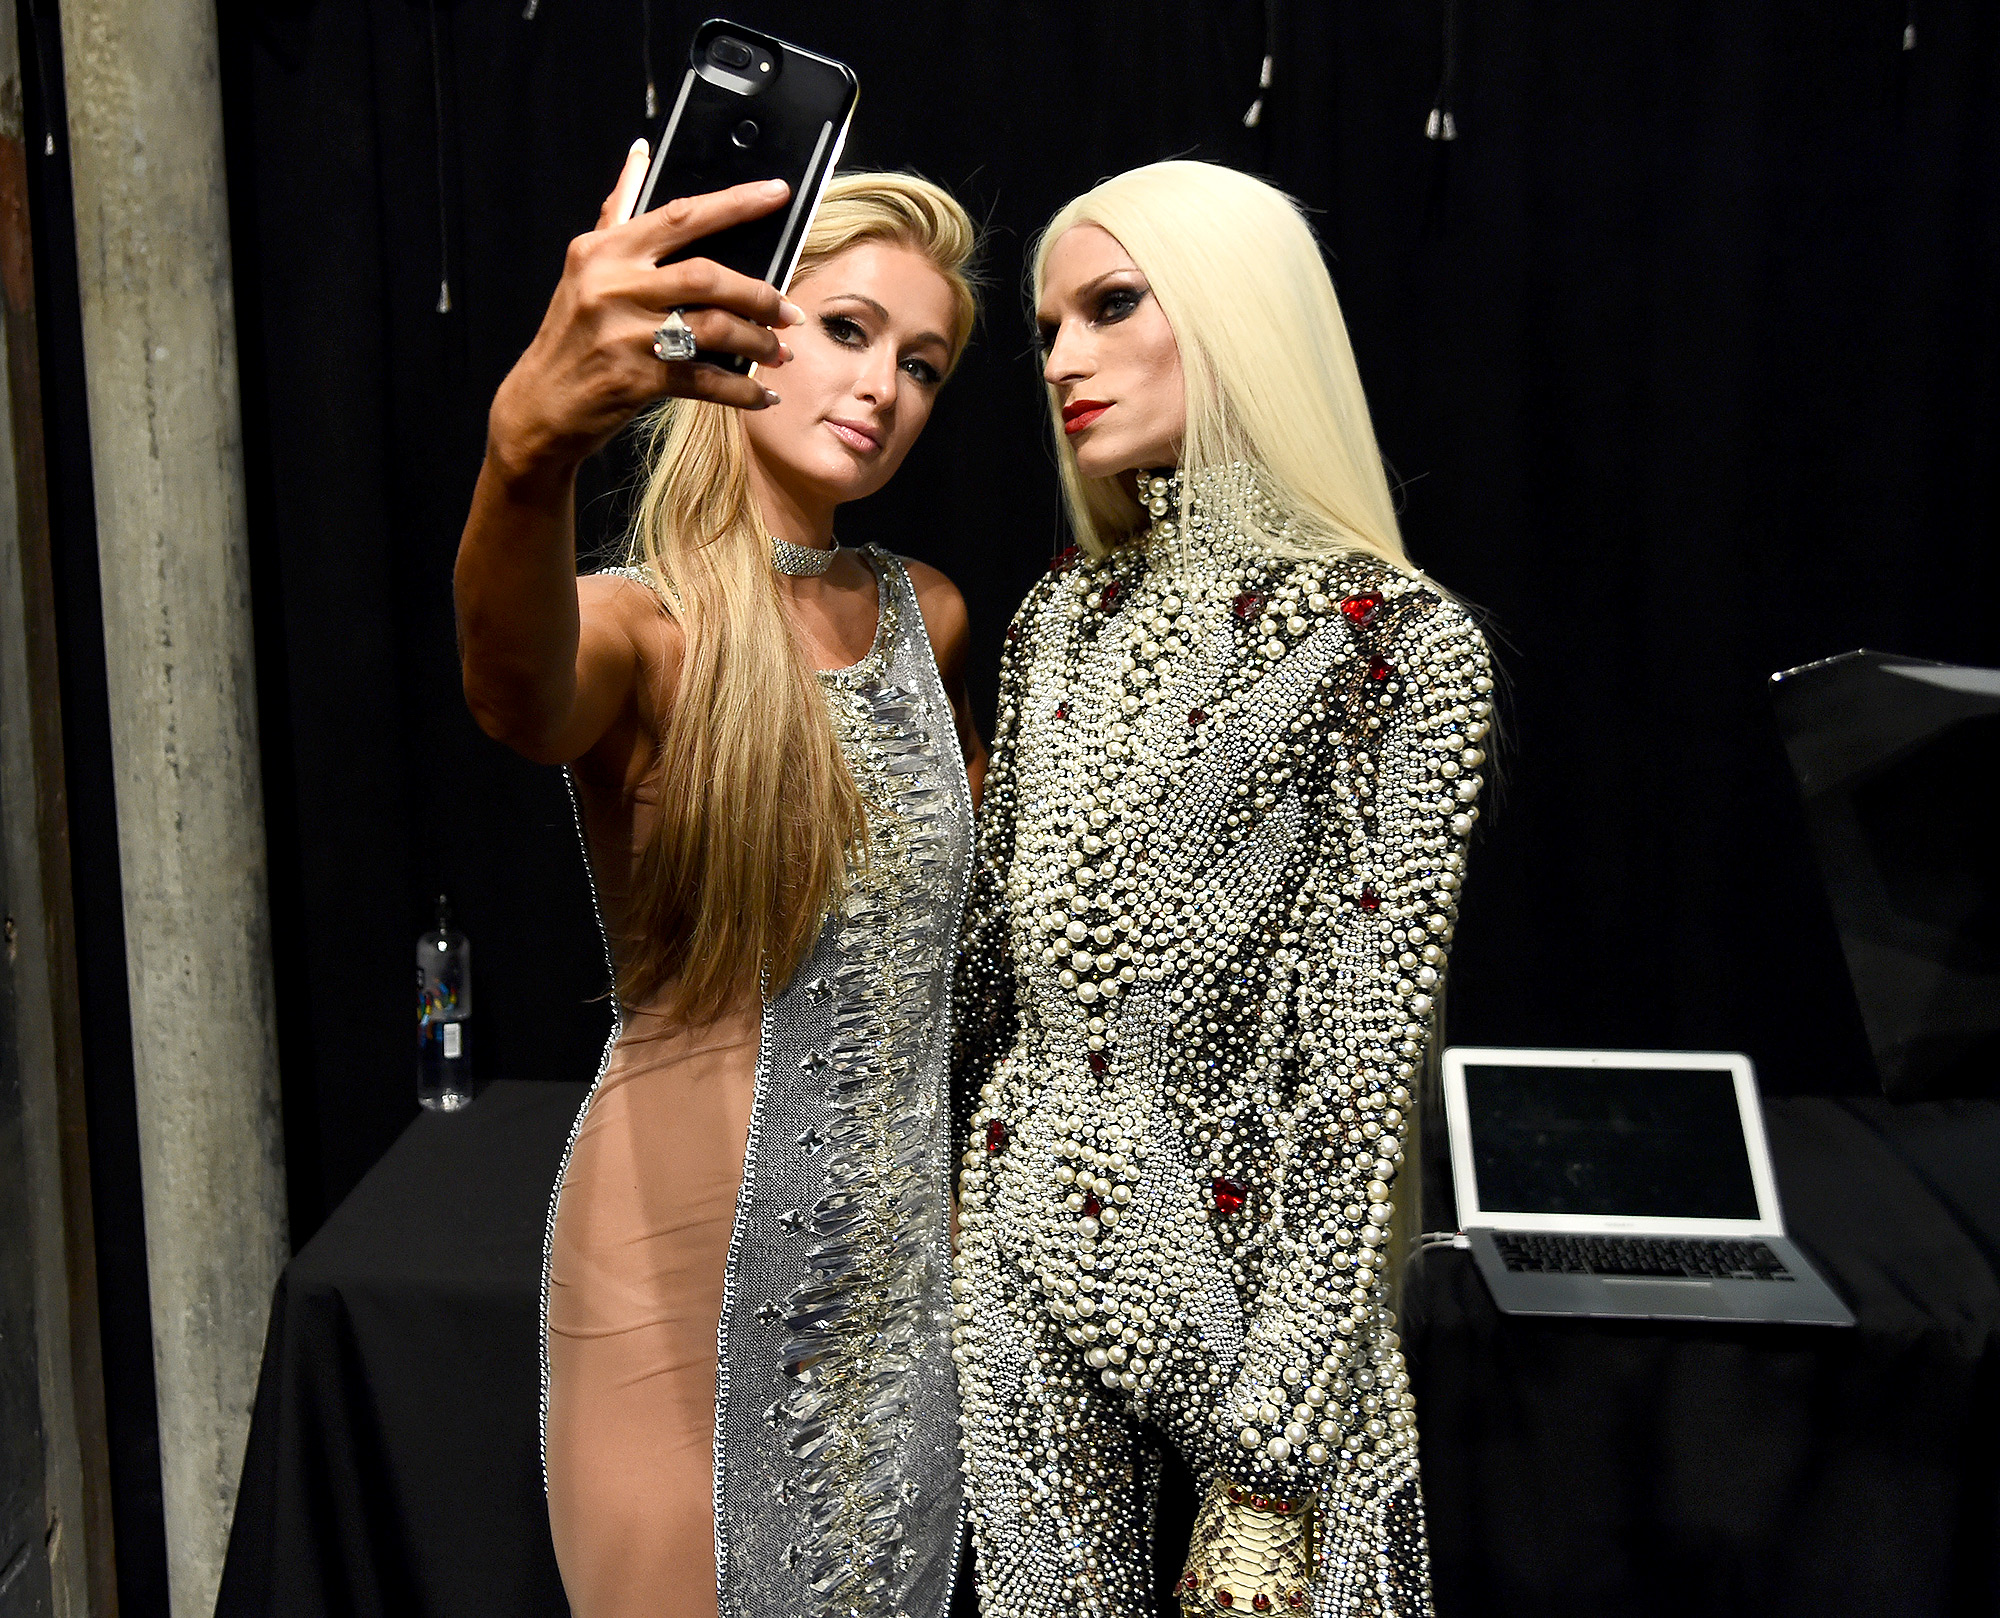 The Blonds - Backstage - February 2017 - New York Fashion Week Presented By MADE